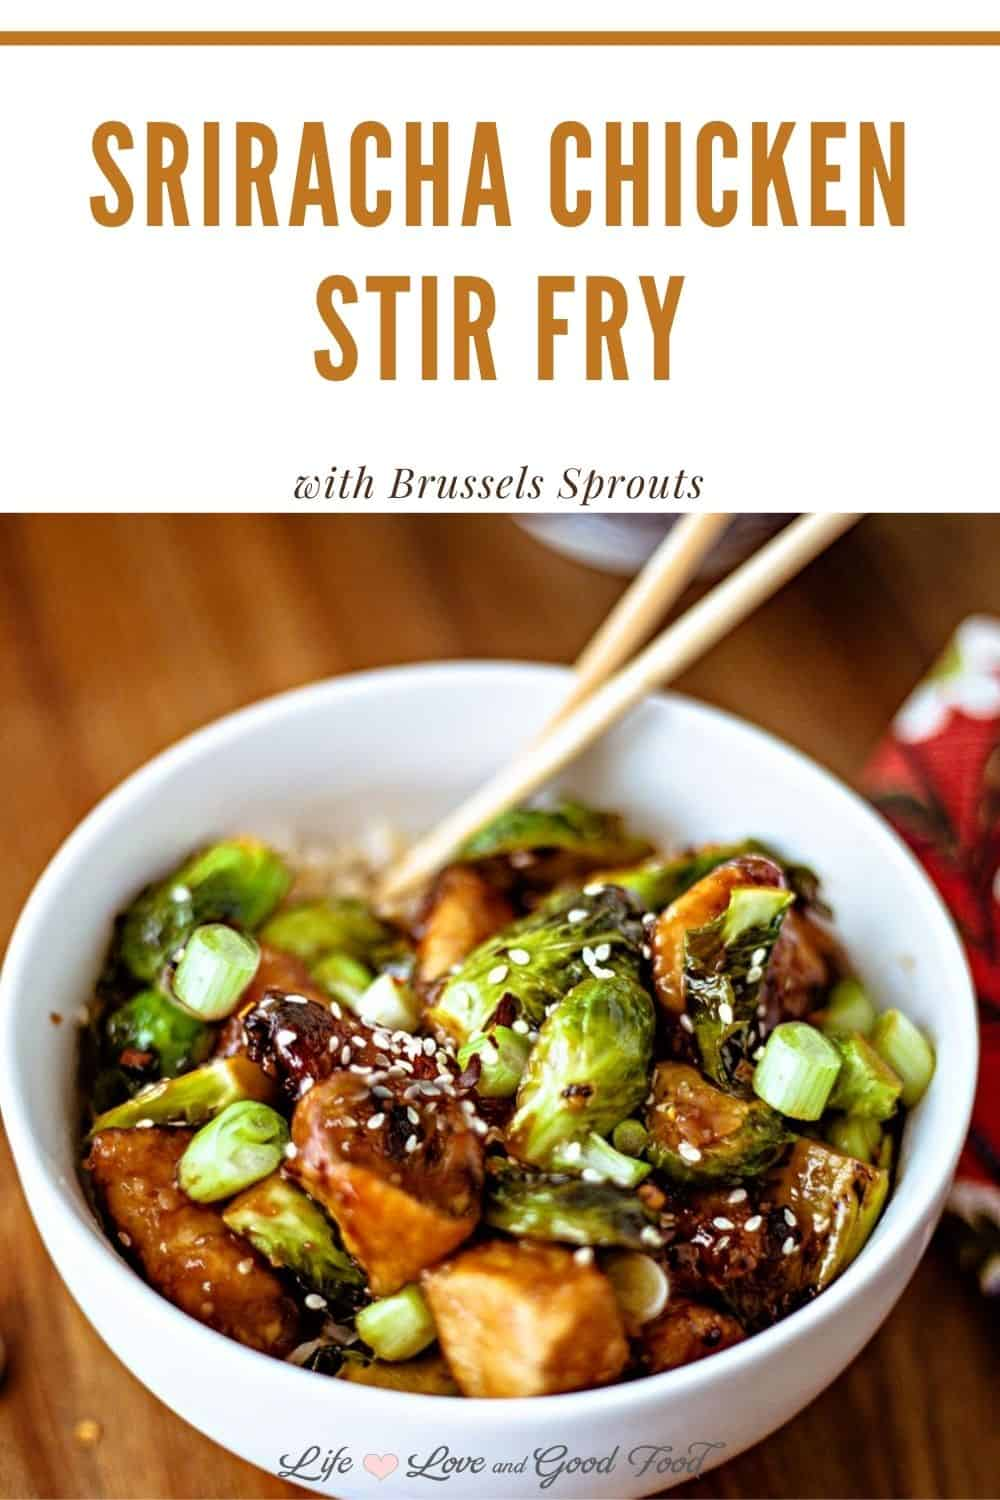 This Sriracha Chicken Stir Fry with Brussels Sprouts boasts a mouthful of flavor in every single bite. Heat up the wok to quickly cook tender chicken and caramelized Brussels sprouts in a spicy sweet honey sriracha sauce. Prep to finished meal, this dish can be on your dinner table in just 30 minutes.